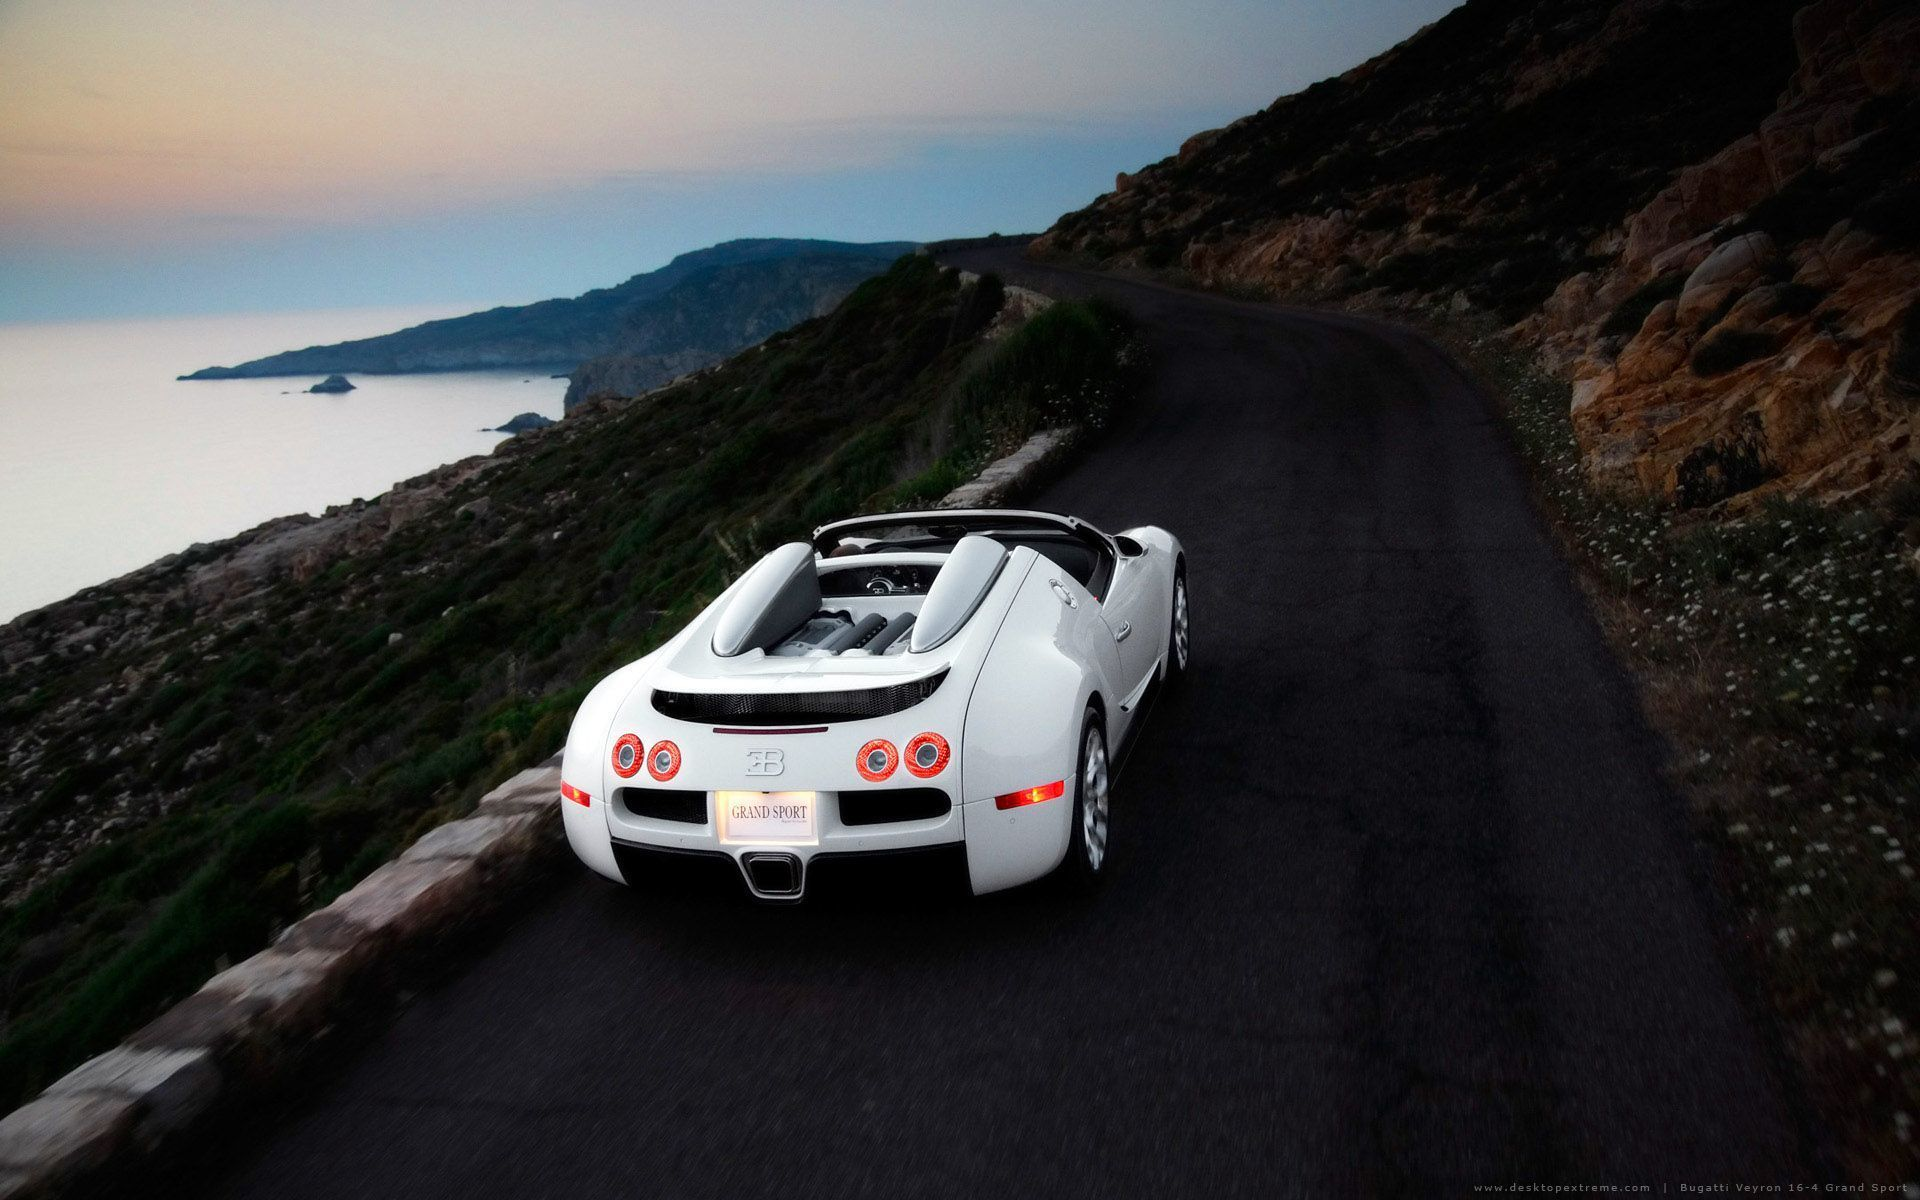 hd bugatti wallpapers for free download | hd wallpapers | pinterest